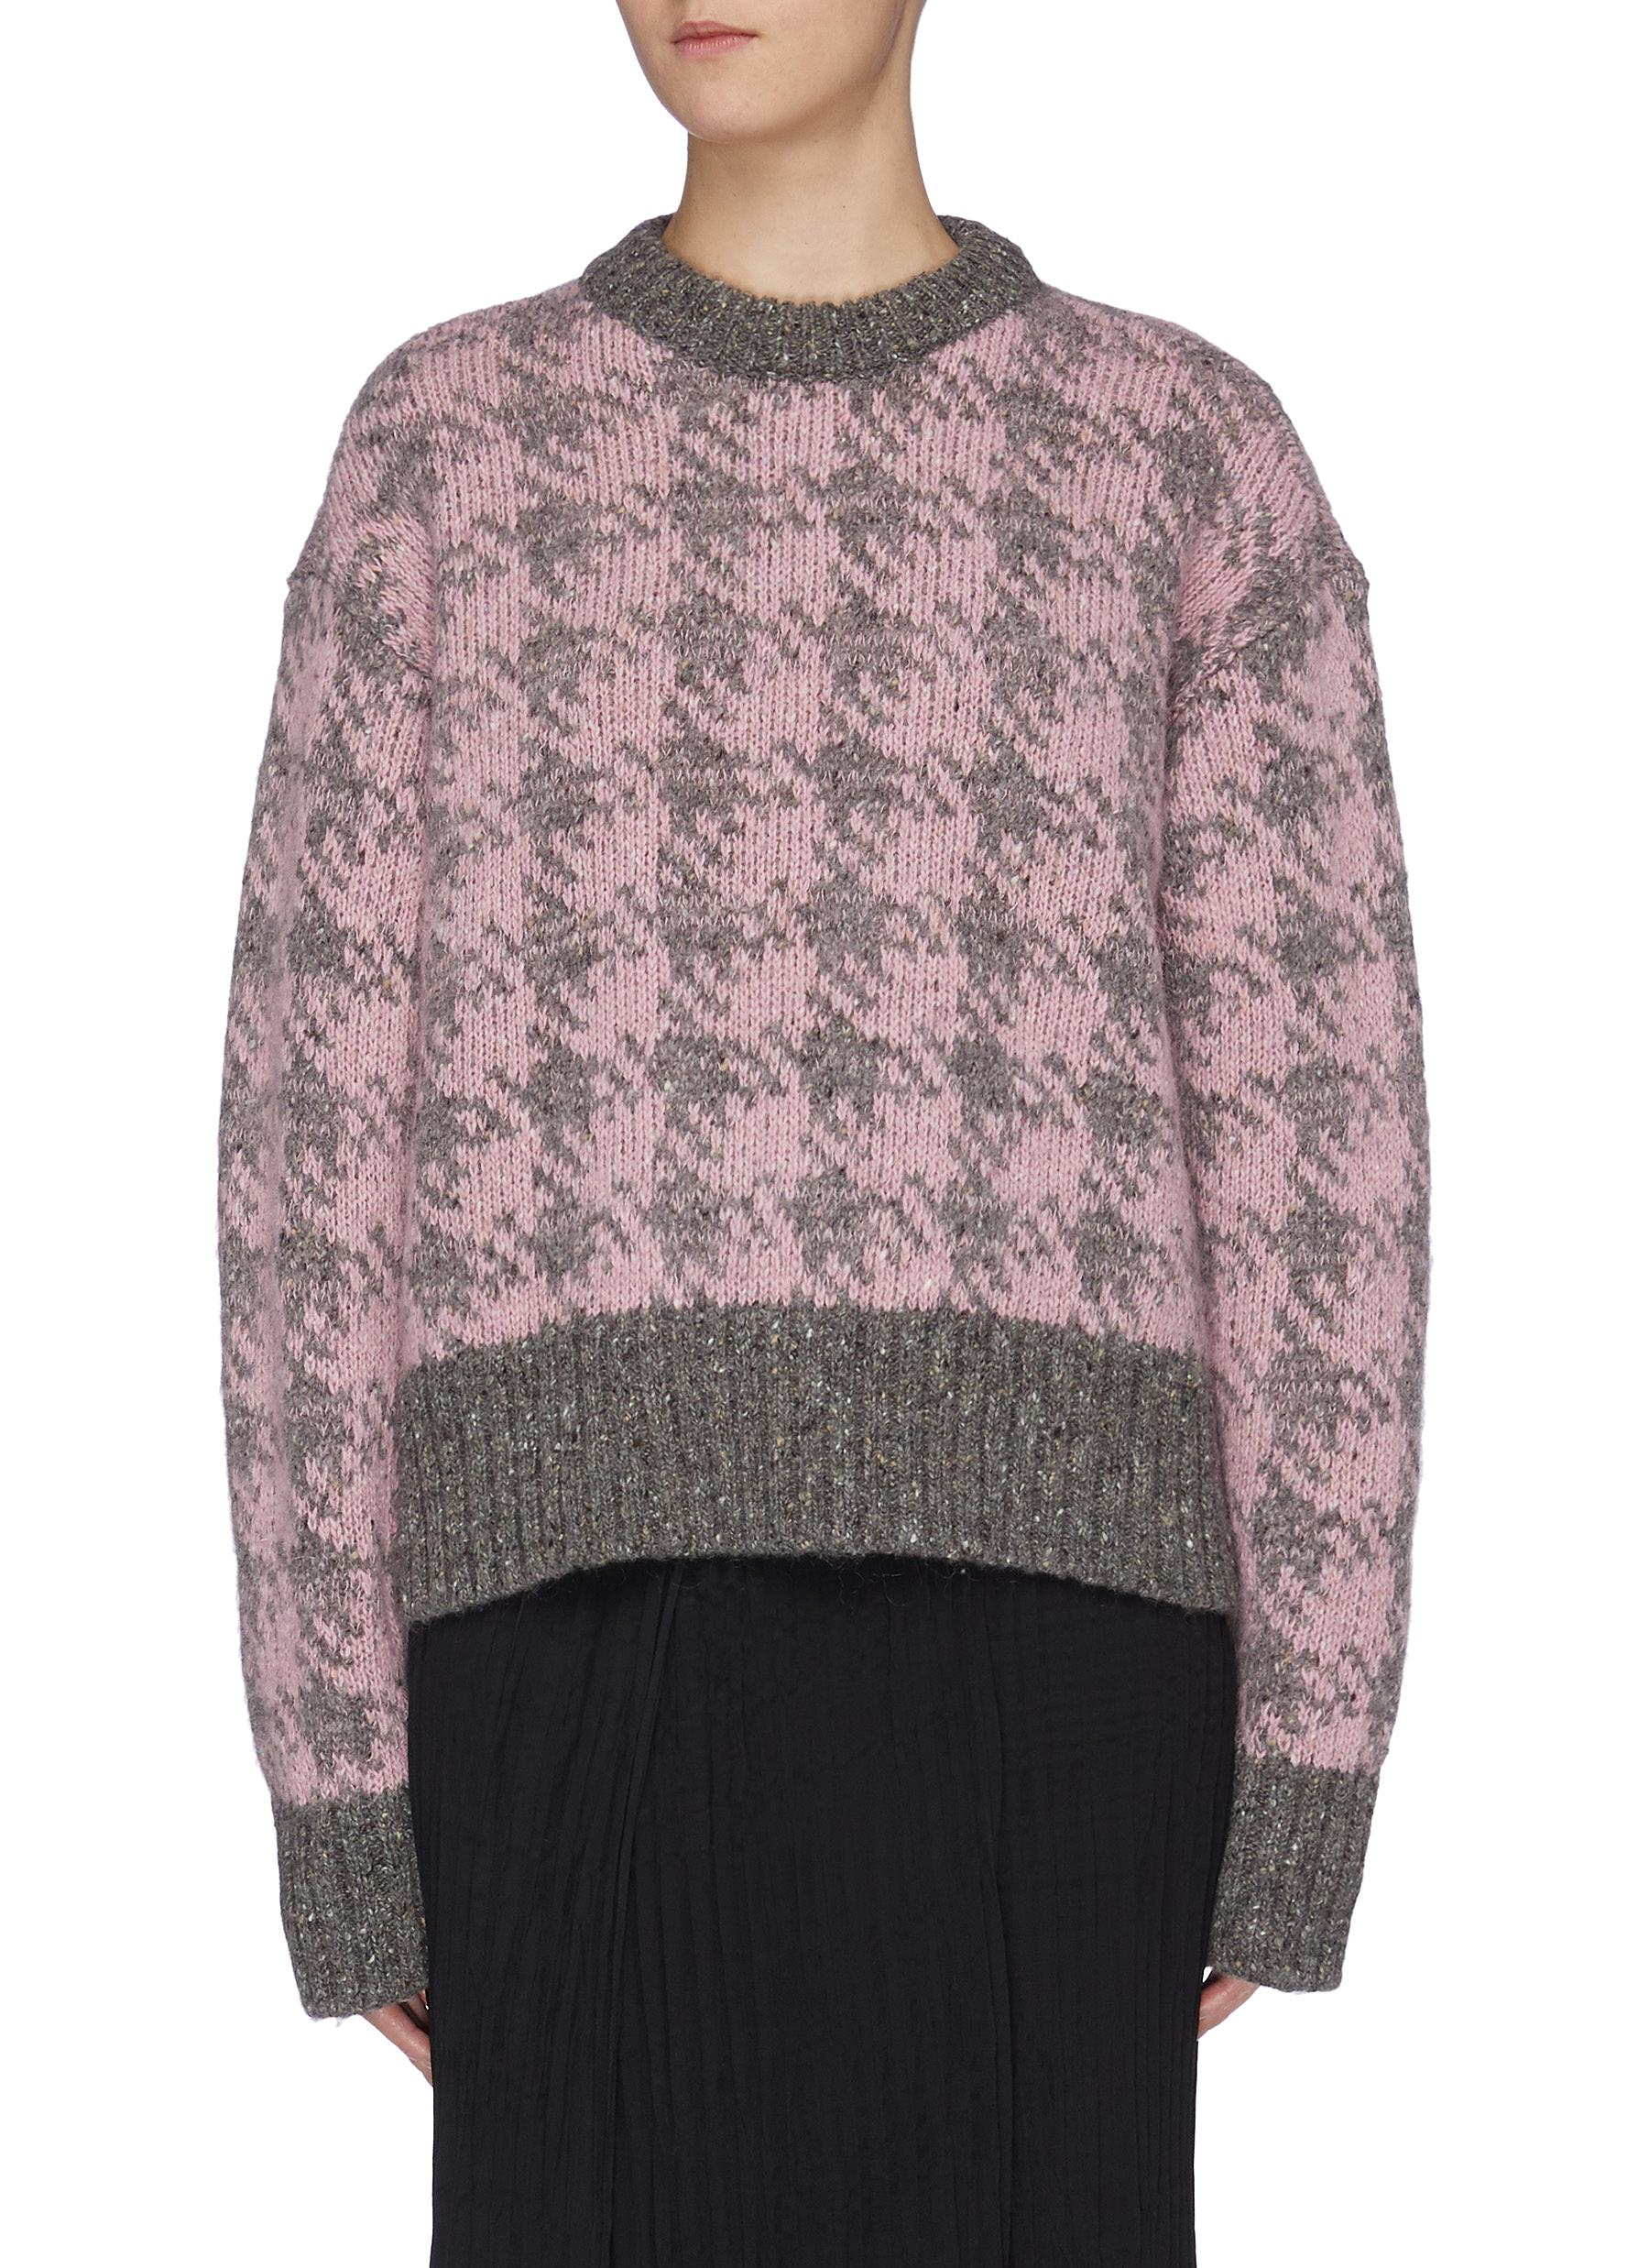 Pied De Poule houndstooth check Merino wool sweater by Joseph